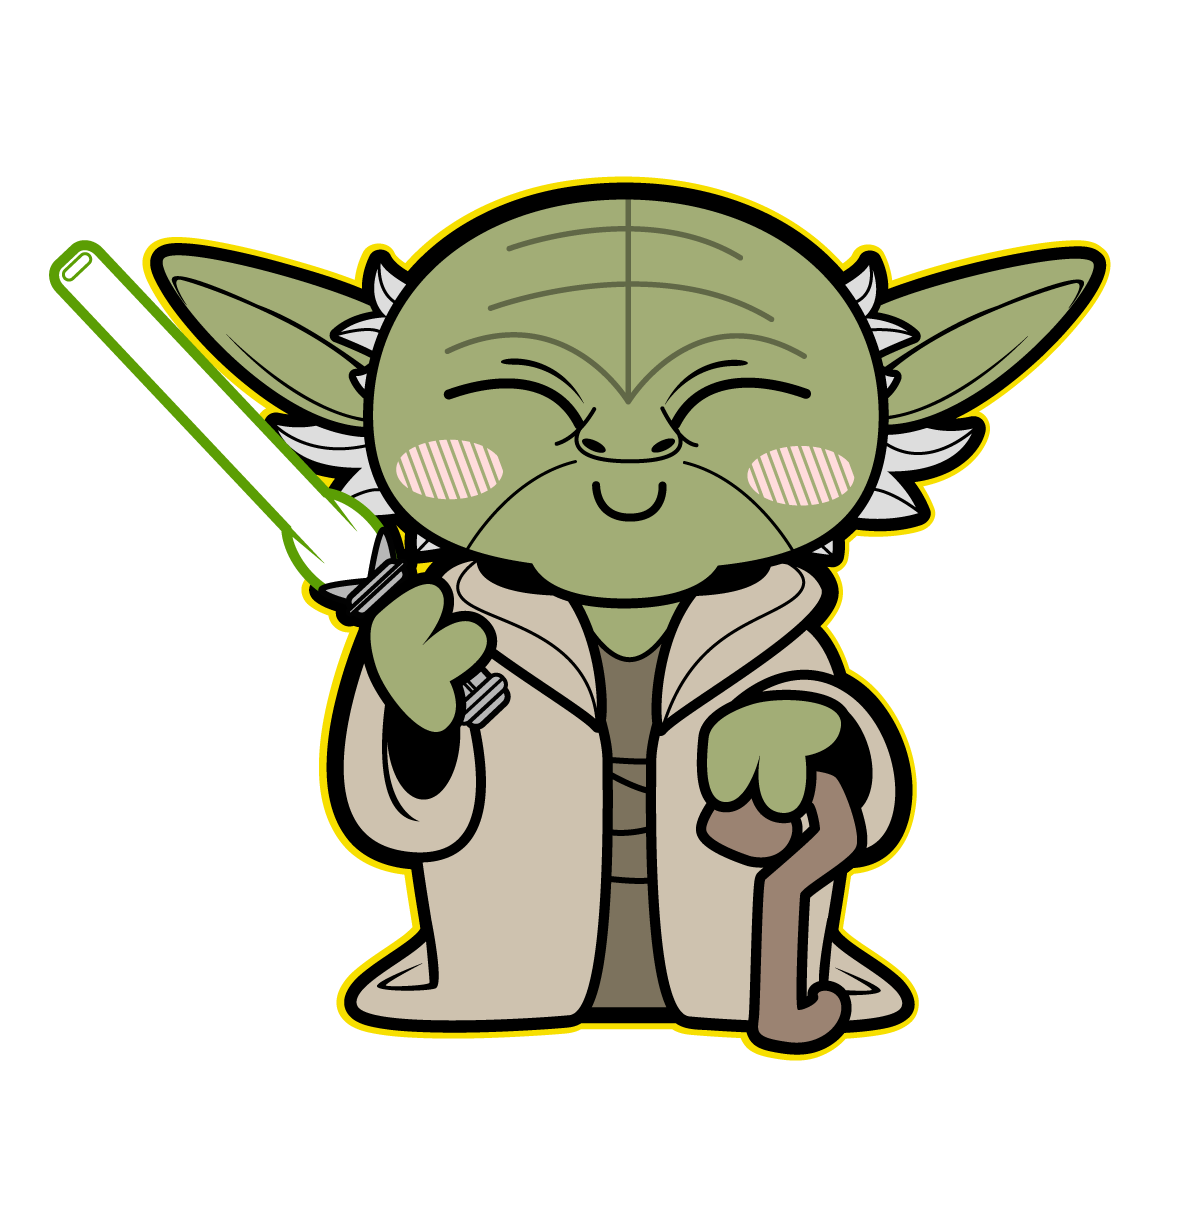 Starwars clipart cute. Kawaii star wars cool